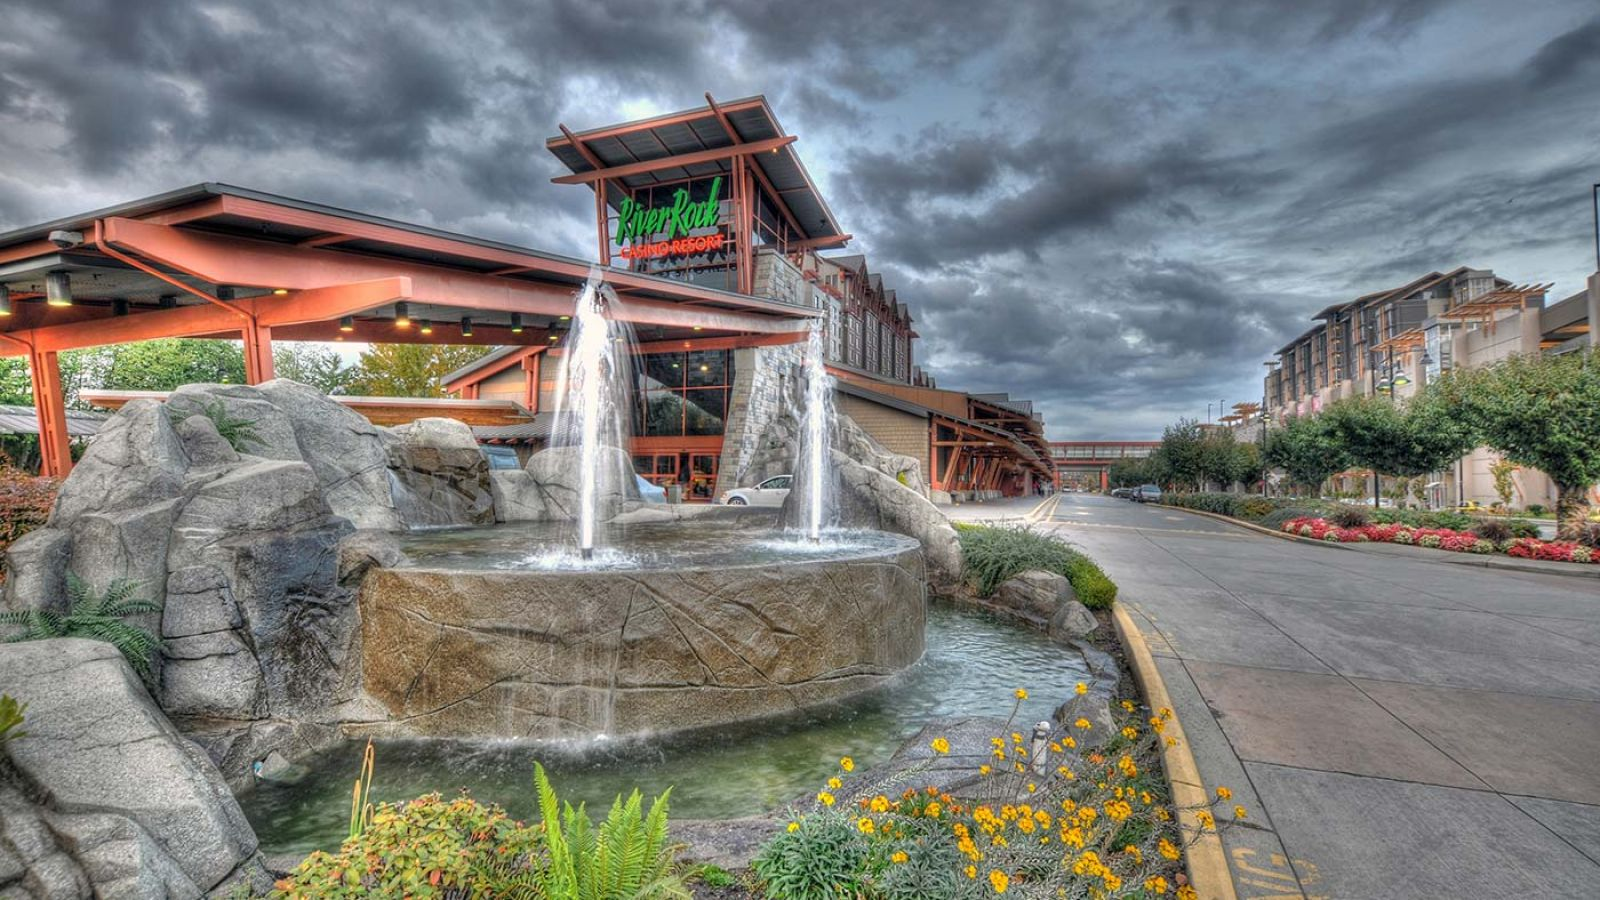 River Rock Casino Richmond